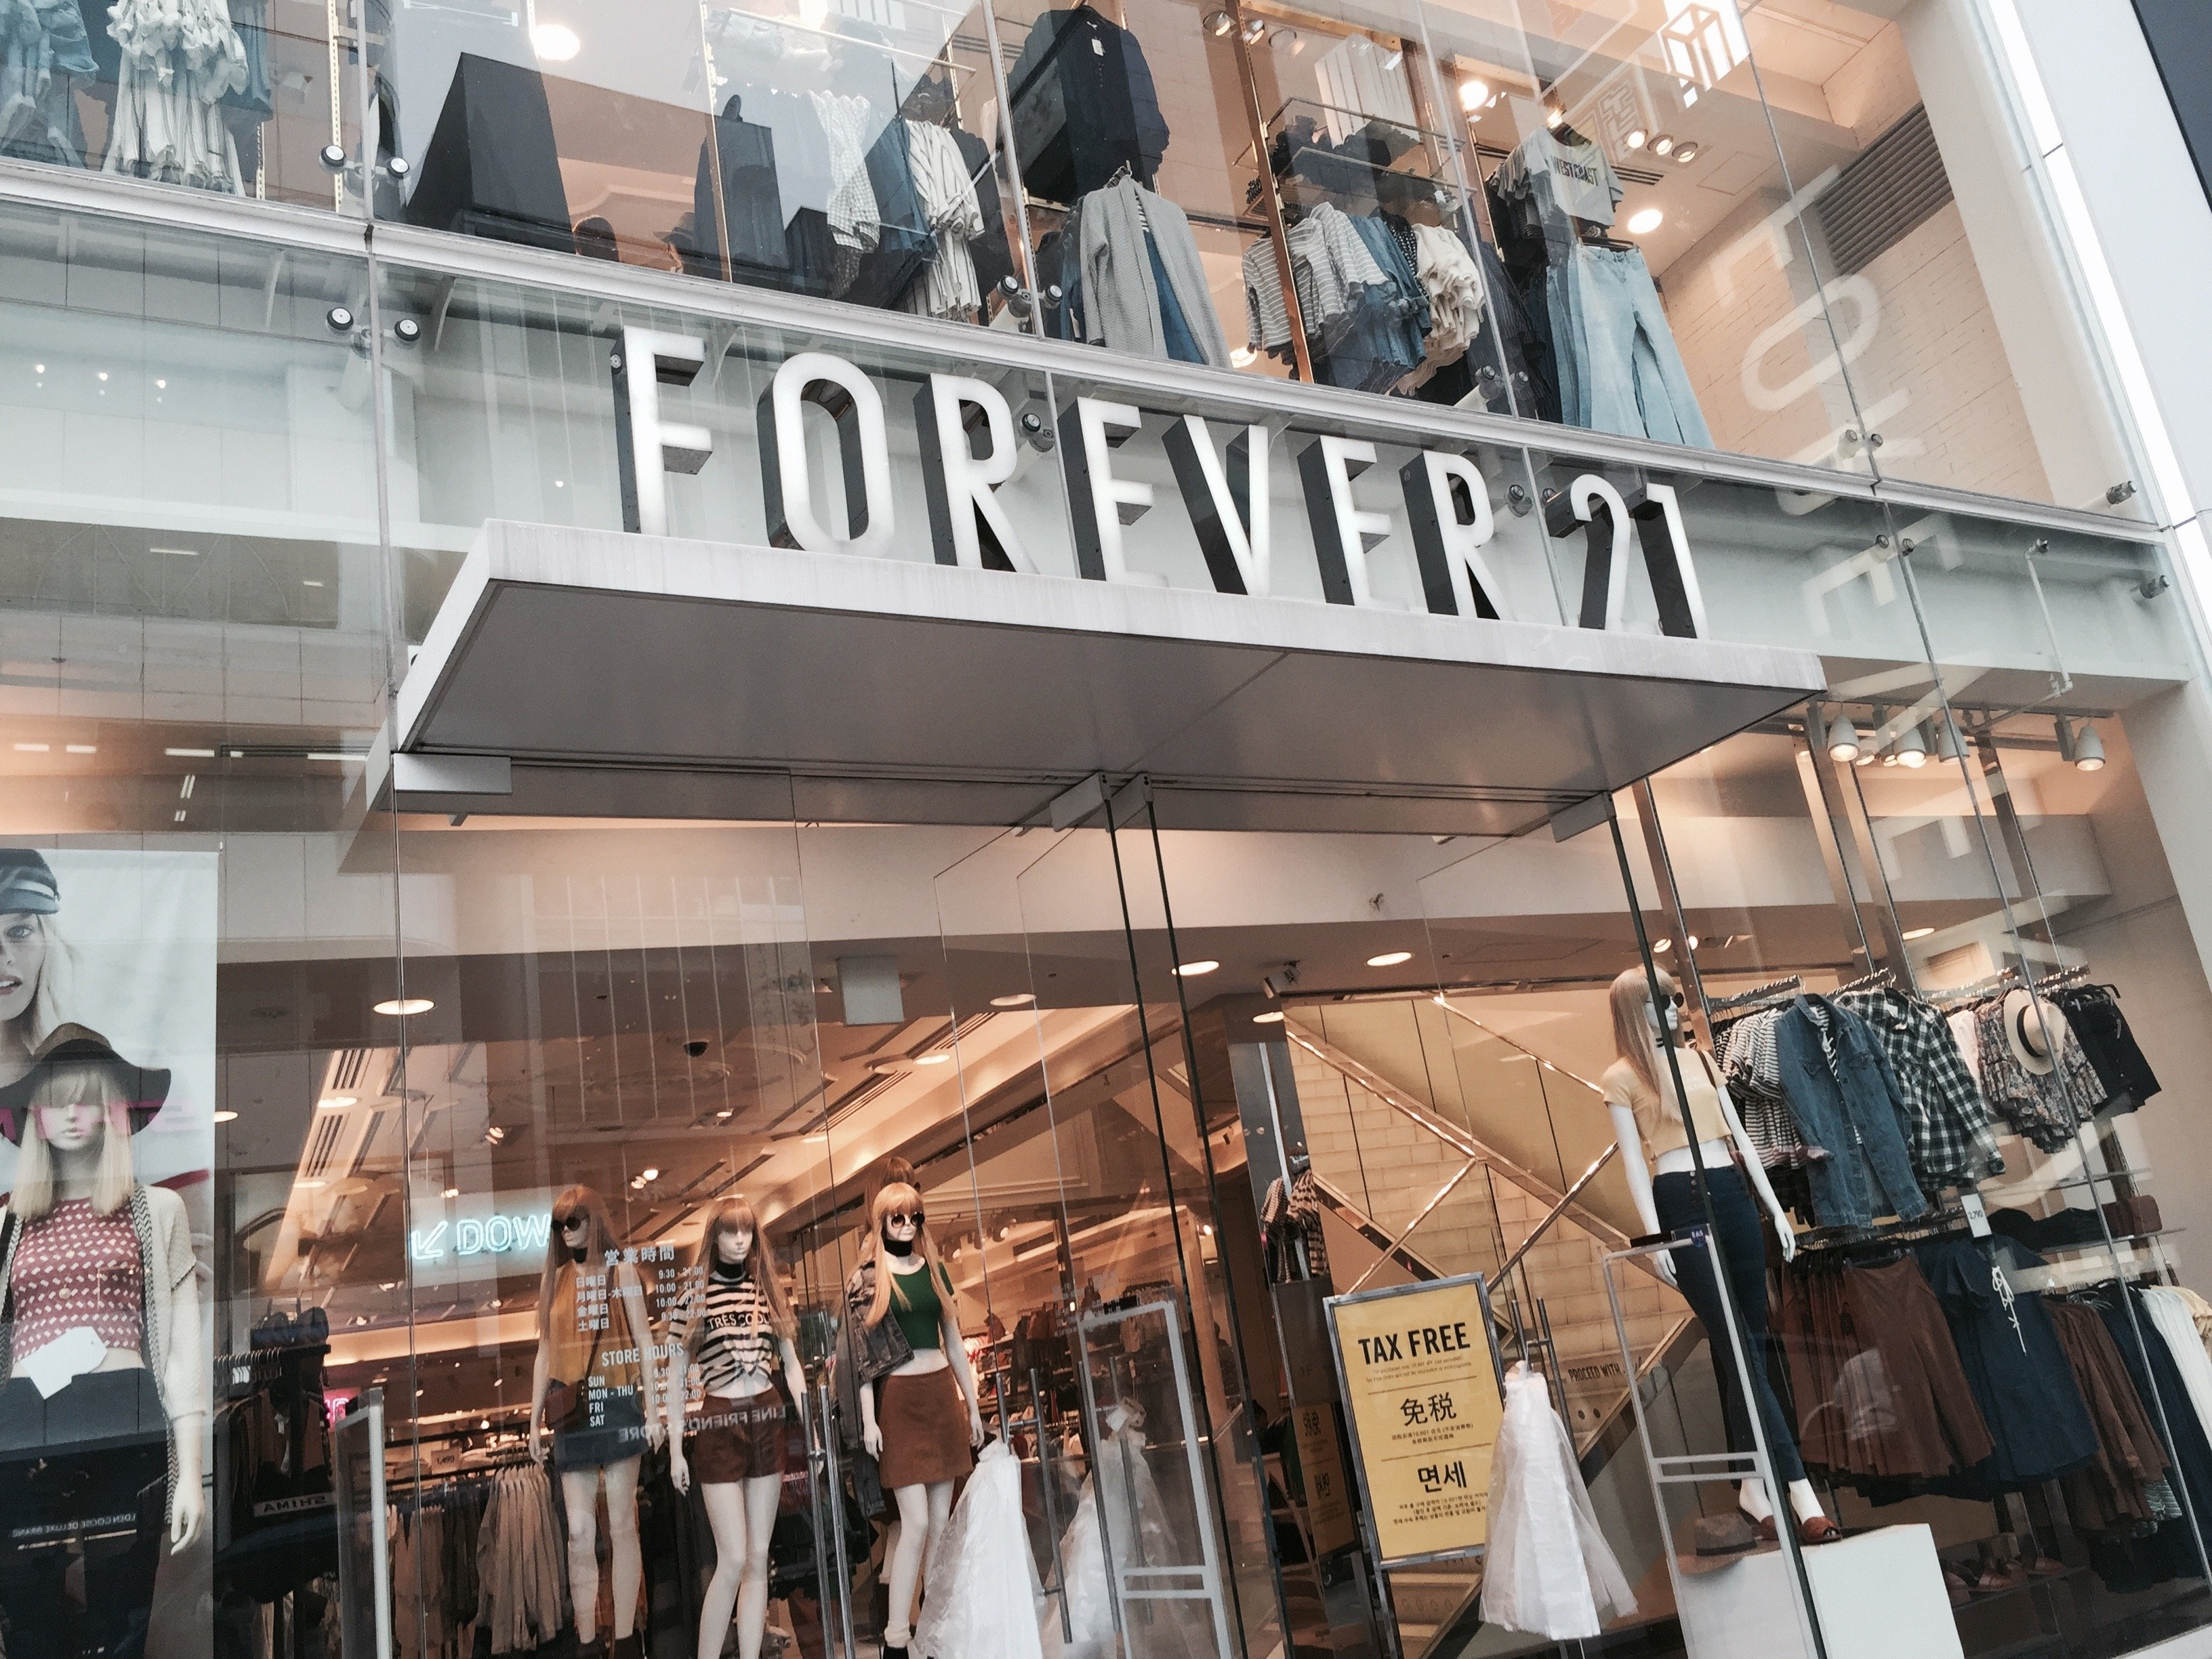 Tokyo Fashion: Forever 21